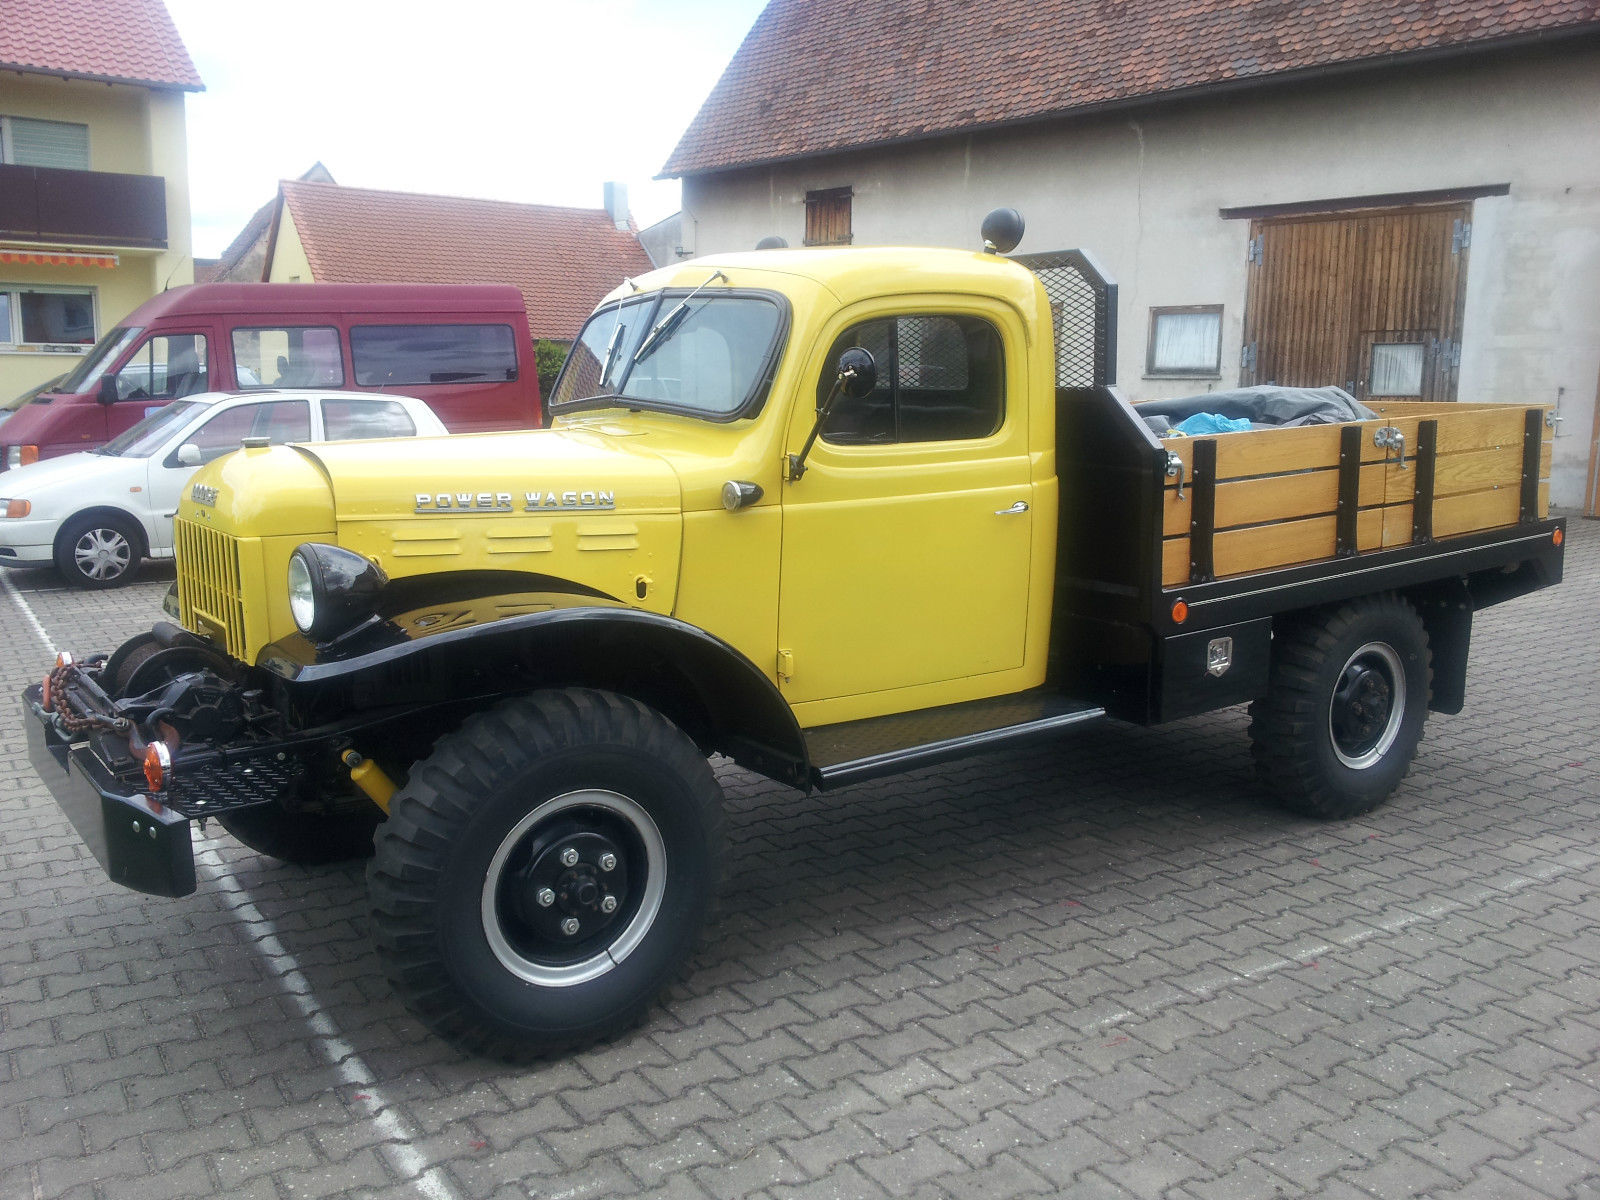 1955 dodge power wagon for sale in nürnberg, germany for sale1955 Dodge Power Wagon Base 38l For Sale #4